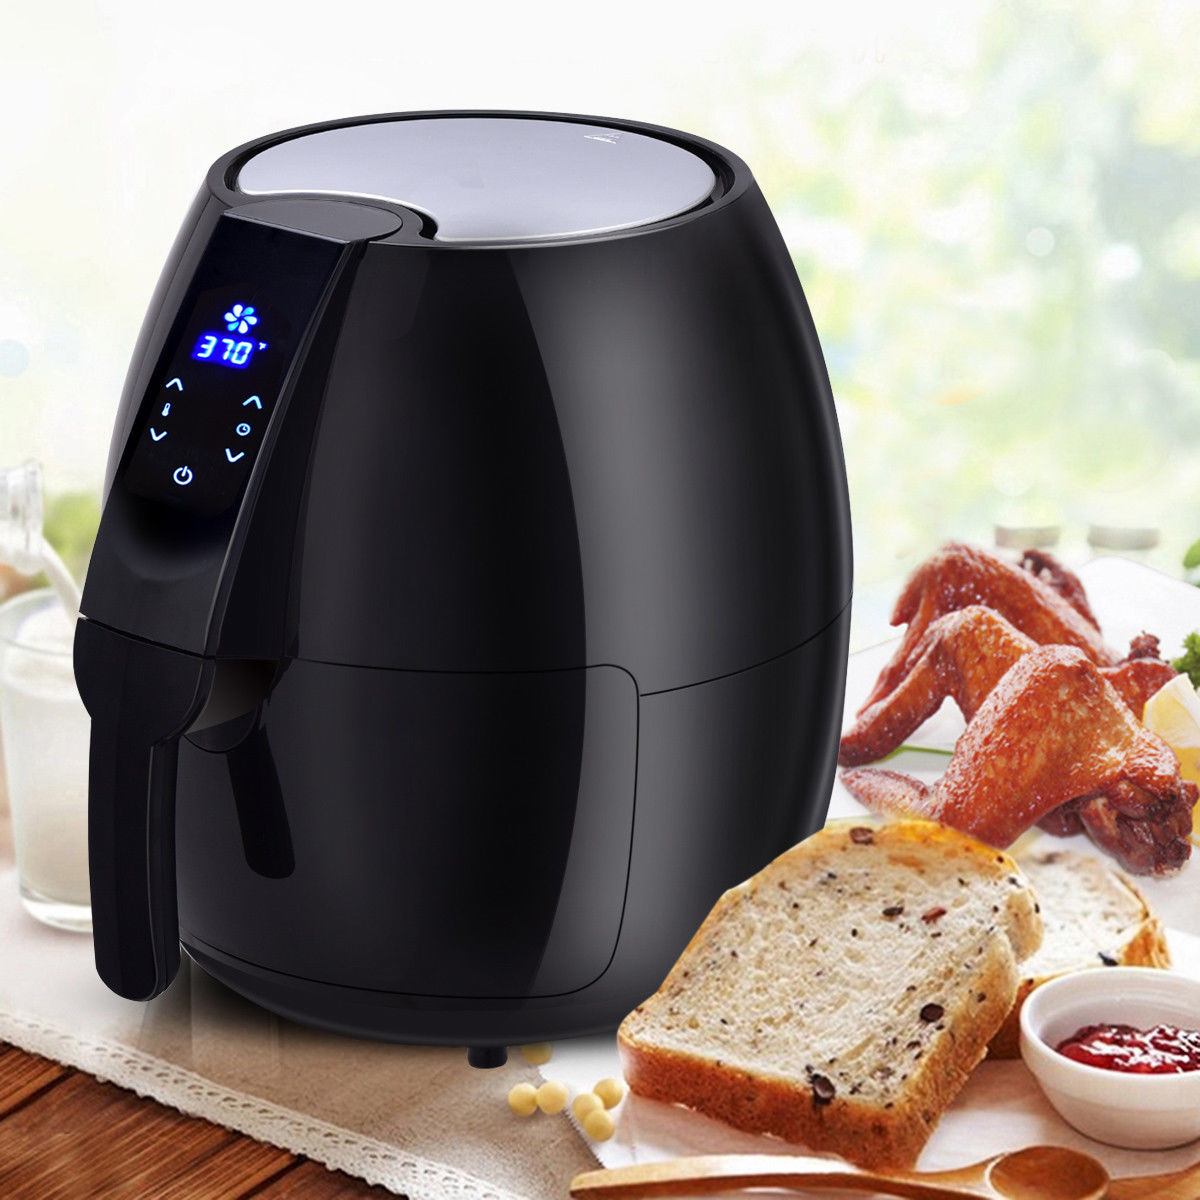 Costway 1500W Electric Air Fryer 4.8 Quart Touch LCD Screen Black/ White